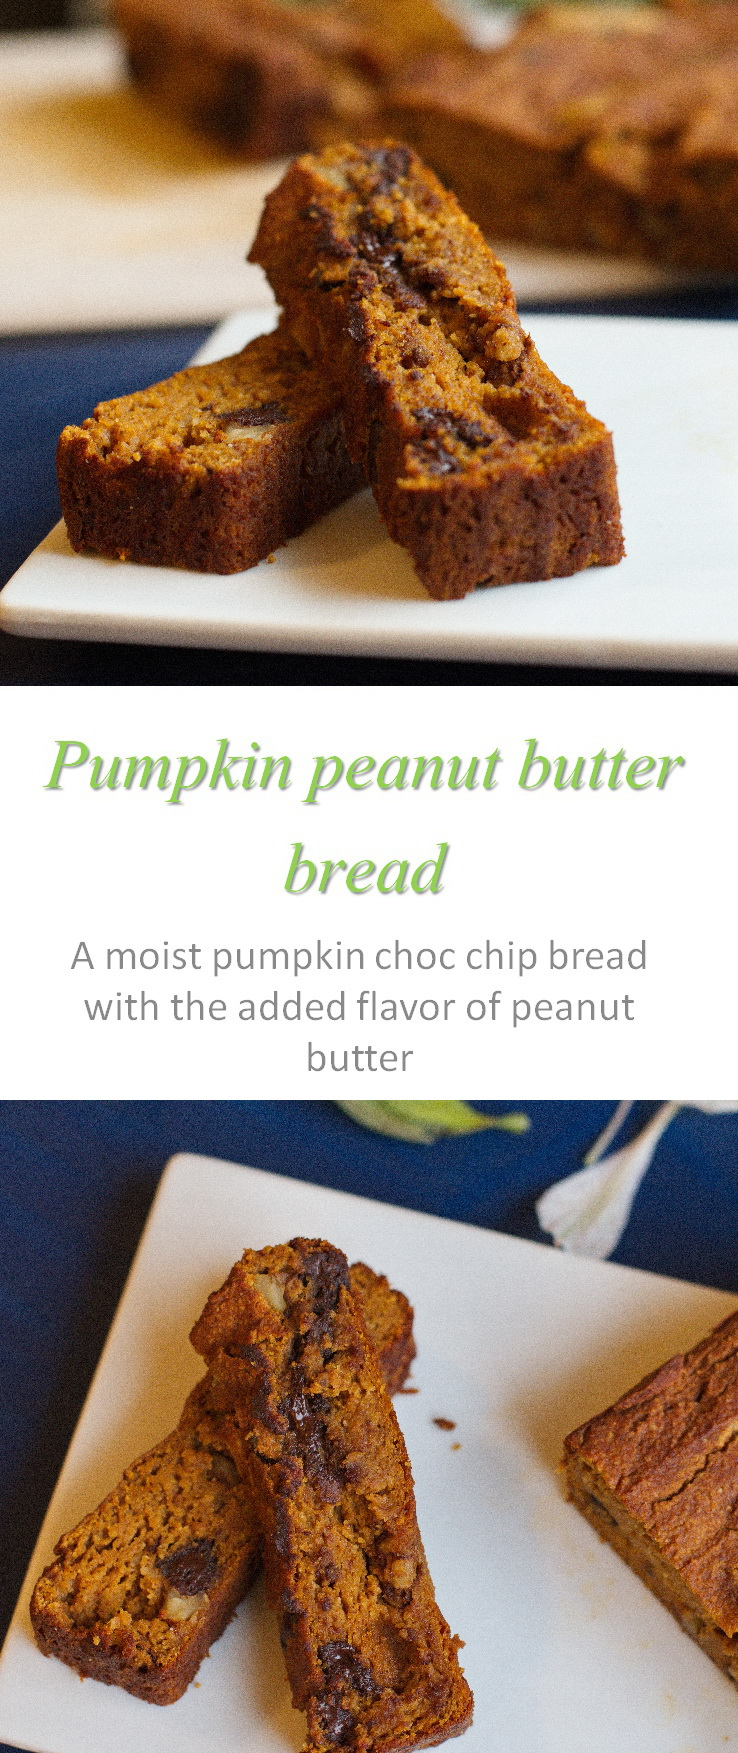 Pumpkin peanut butter bread - a yummy gluten and dairy free treat with the combination of pumpkin, peanut butter, nuts and chocolate chips. #pumpkinbread